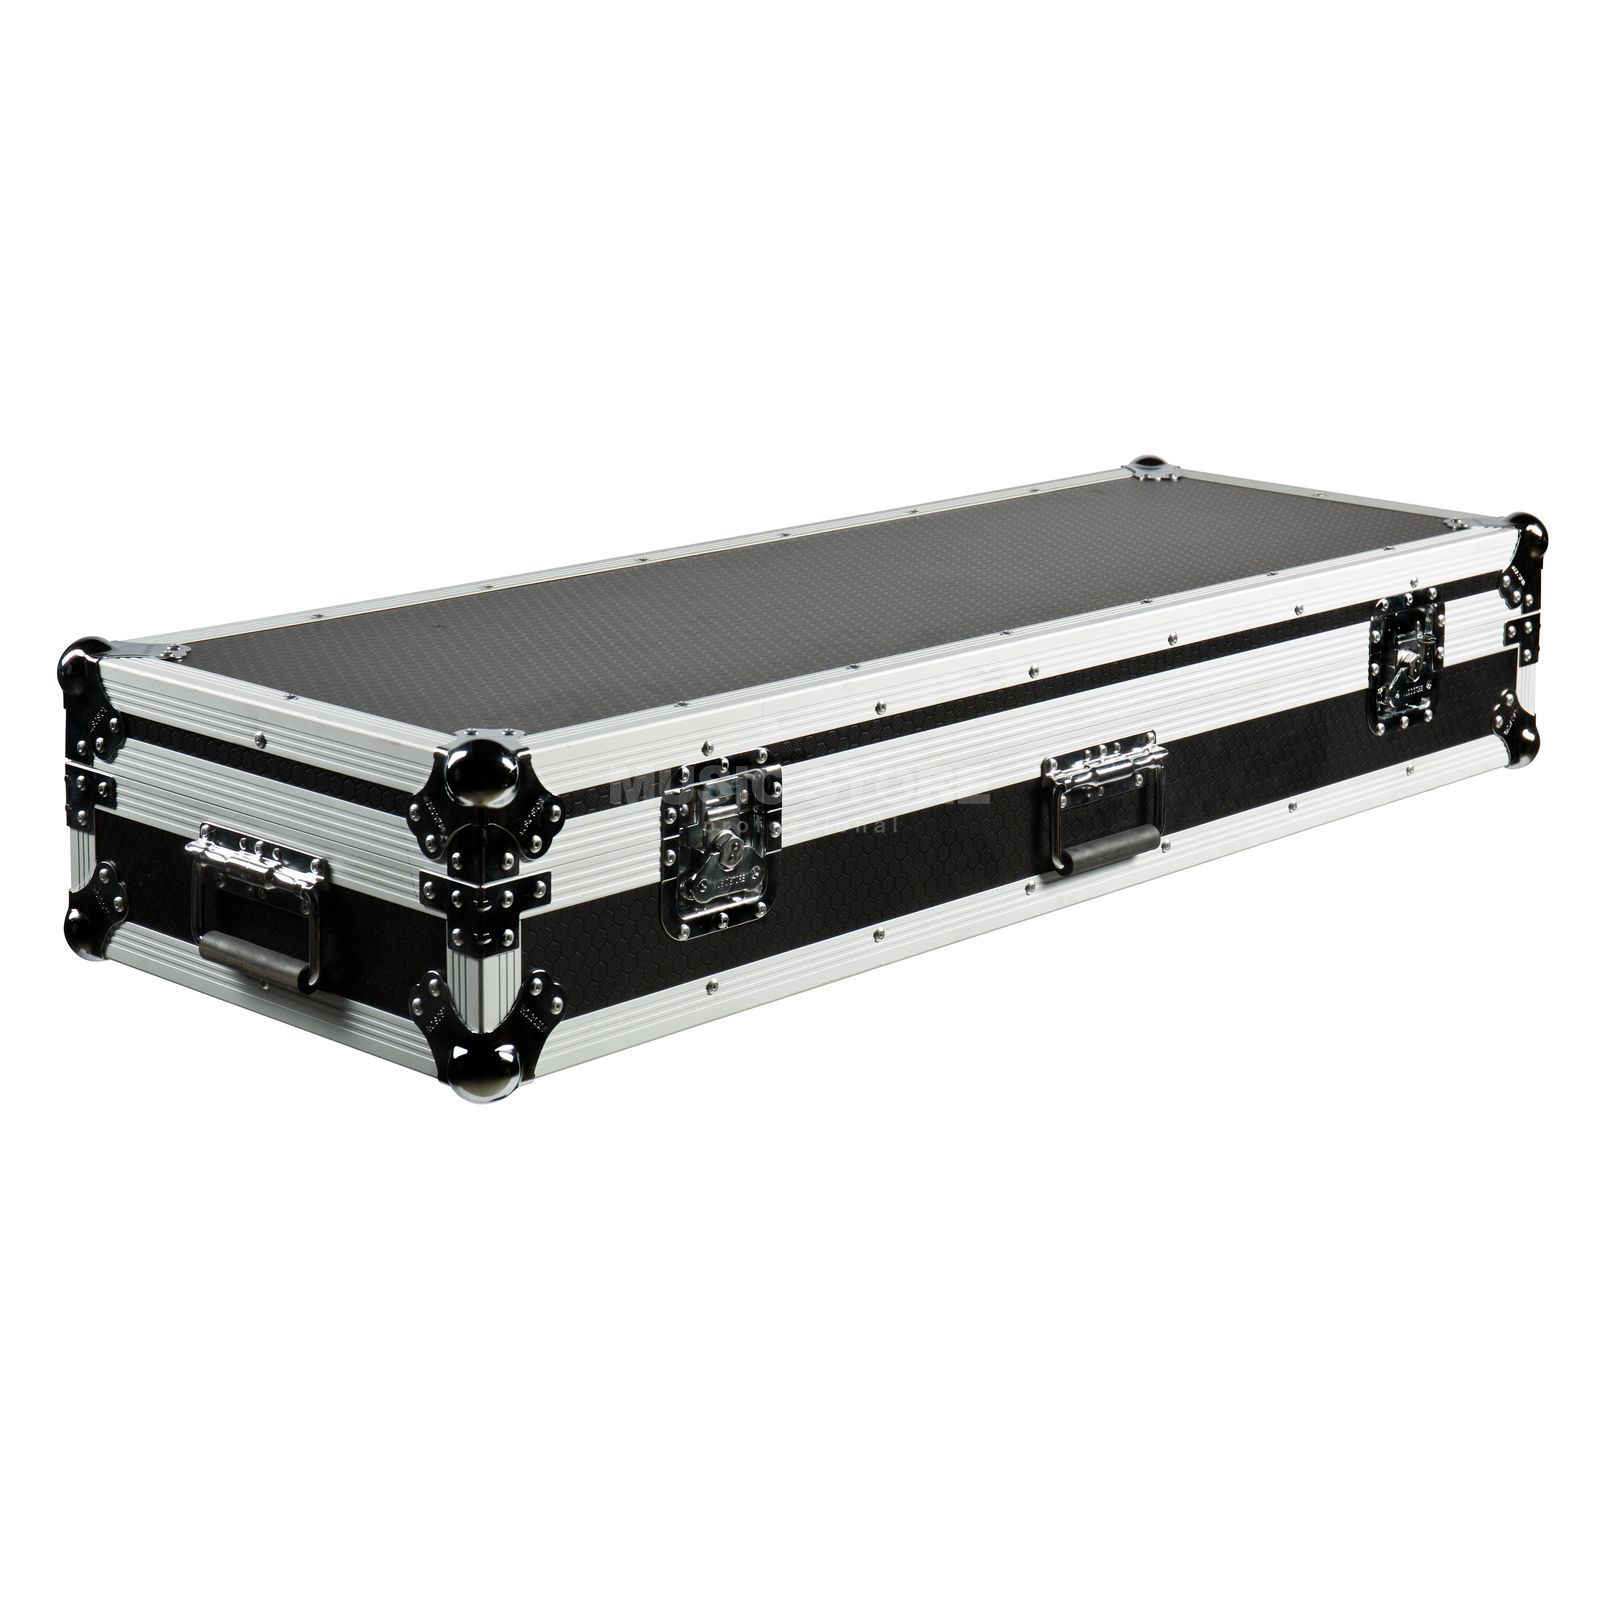 lightmaXX TOUR CASE 4x LED BAR ECO SECTOR 8, COLOR BAR, EUROLITE Product Image